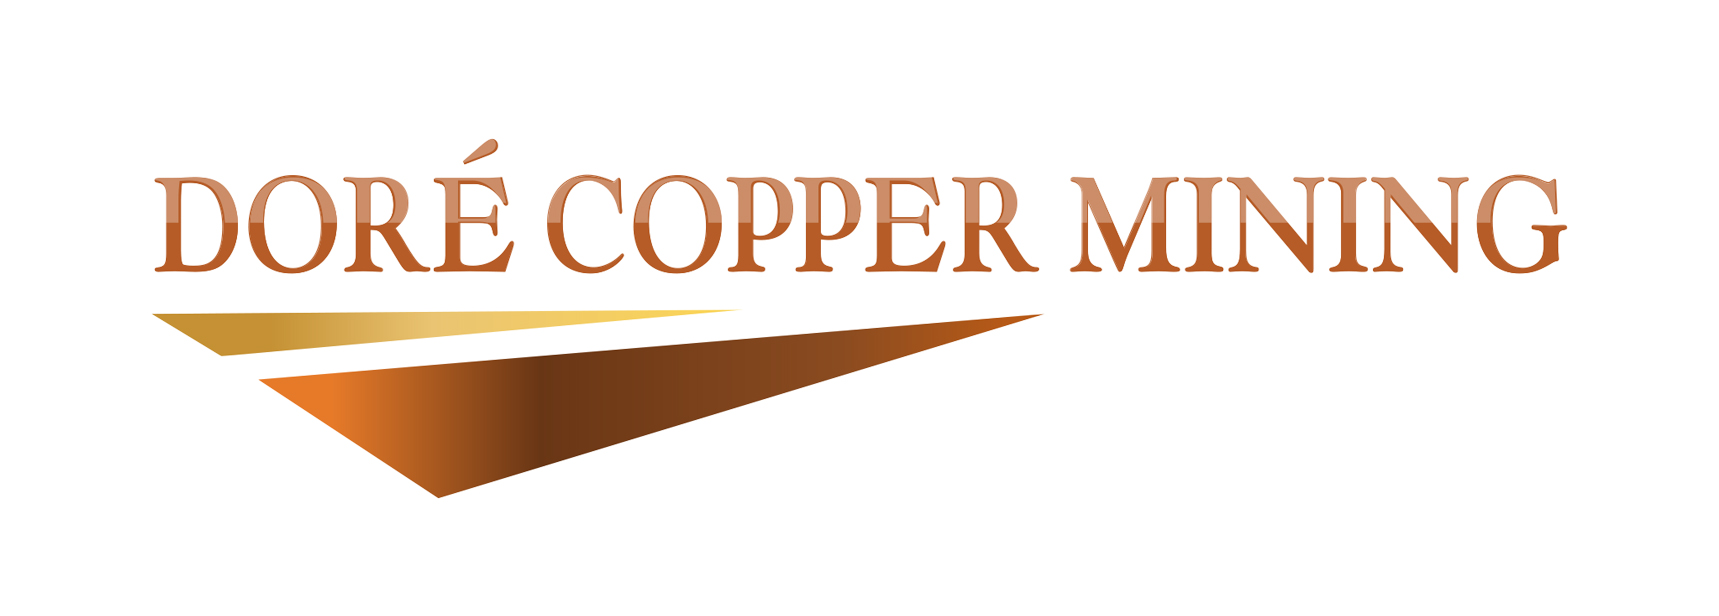 Doré Copper Intersects 6.92% Copper, 3.1 g/t Gold and 24.2 g/t Silver Over 3